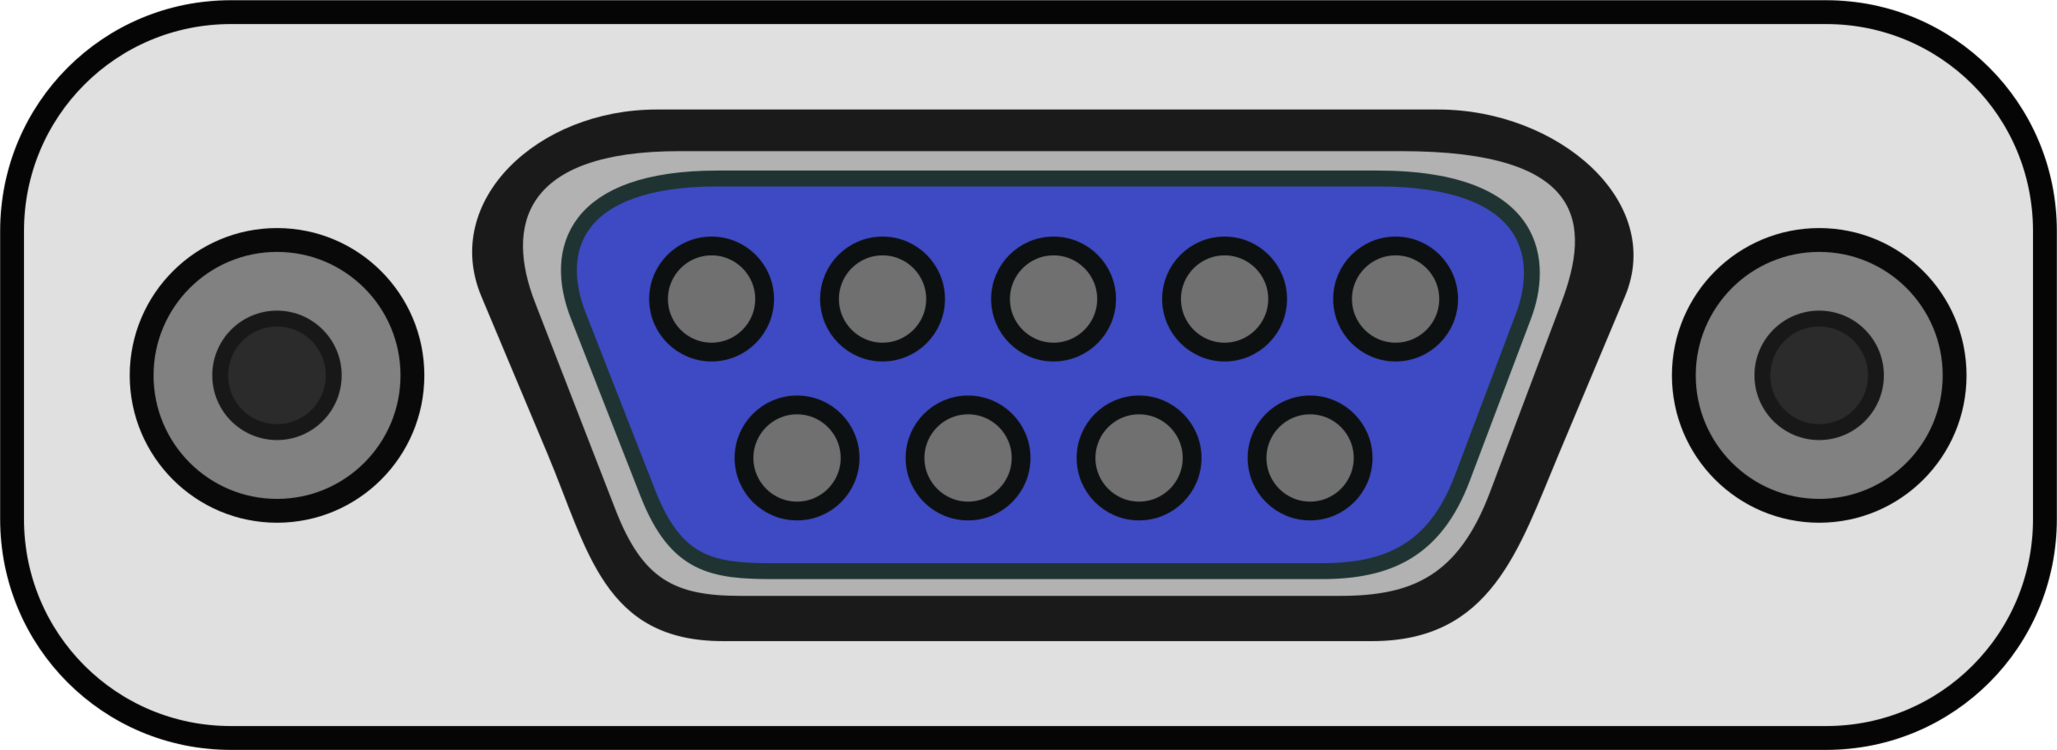 Tv clipart serial. Port computer rs icons